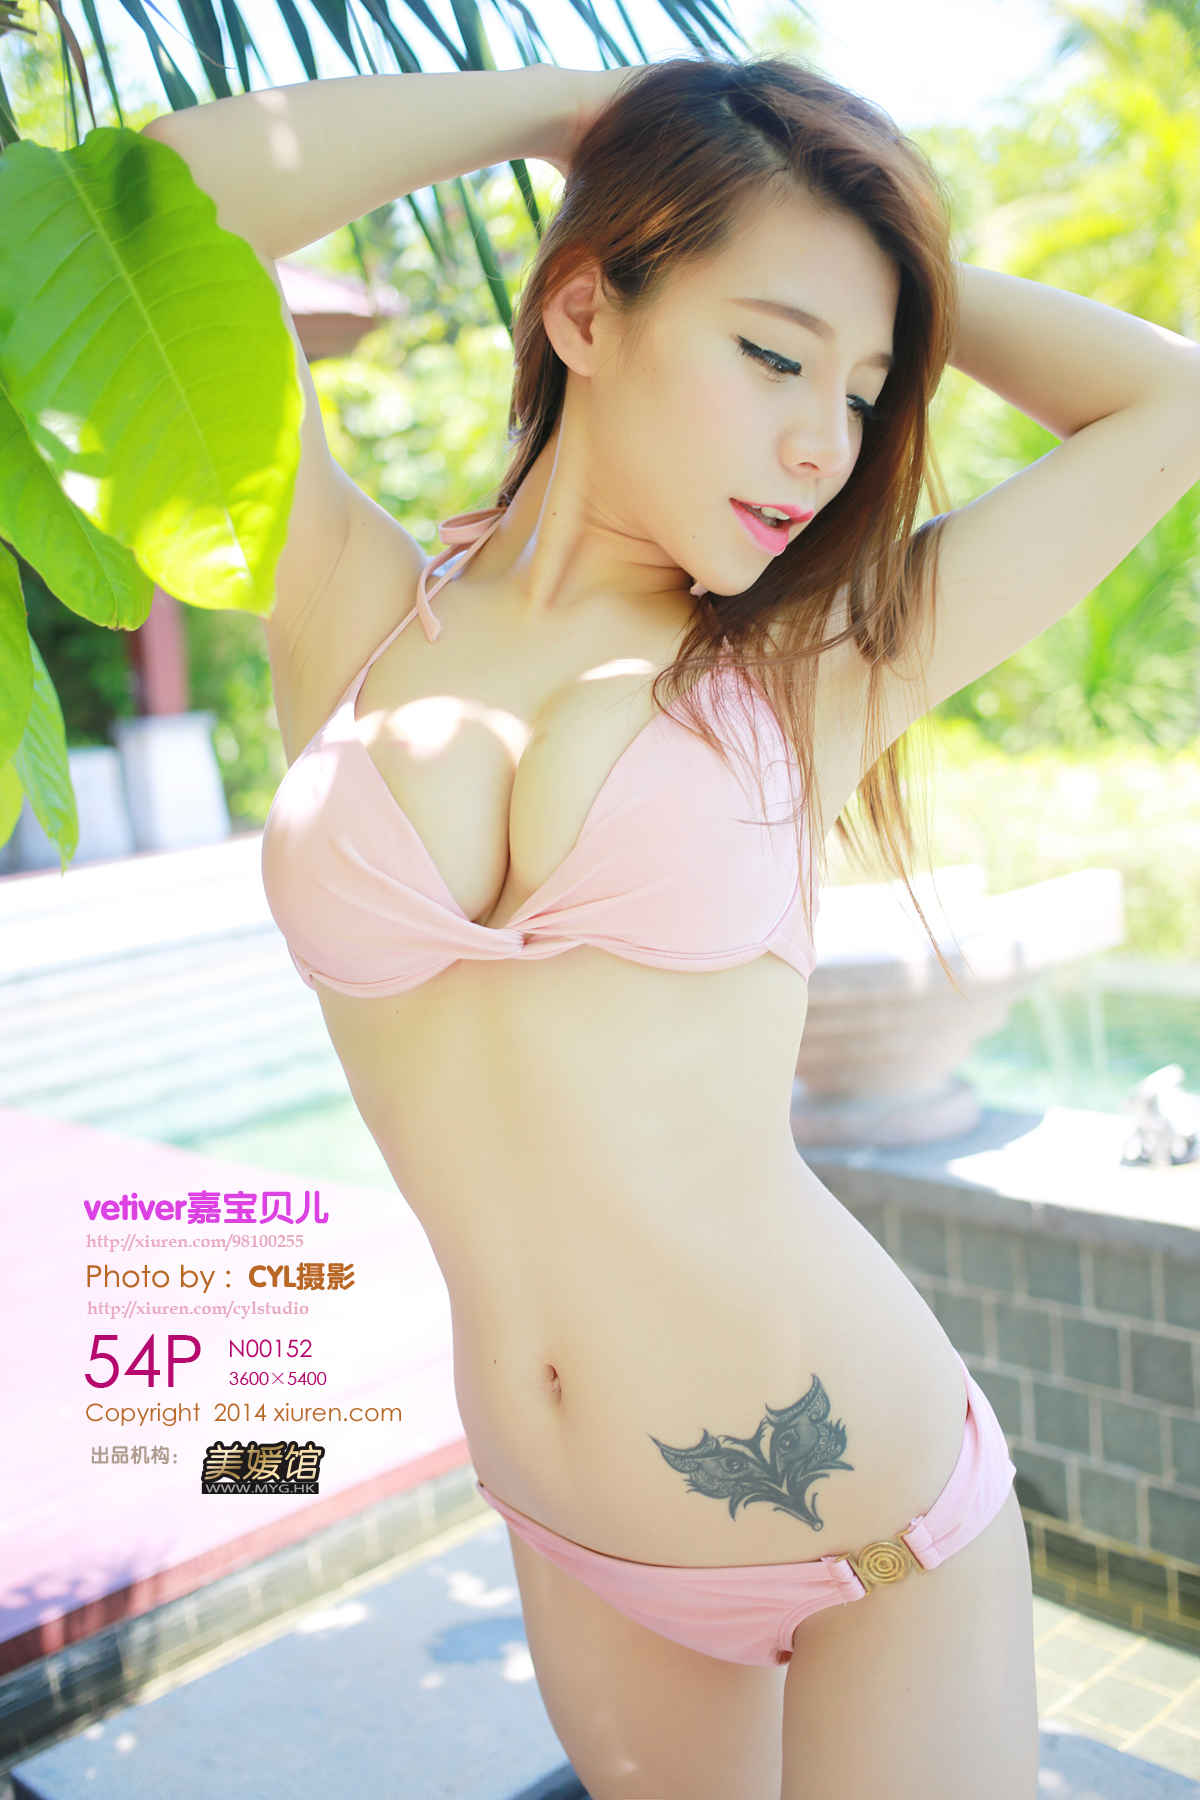 XiuRen-N00152-vetiver-cover.jpg